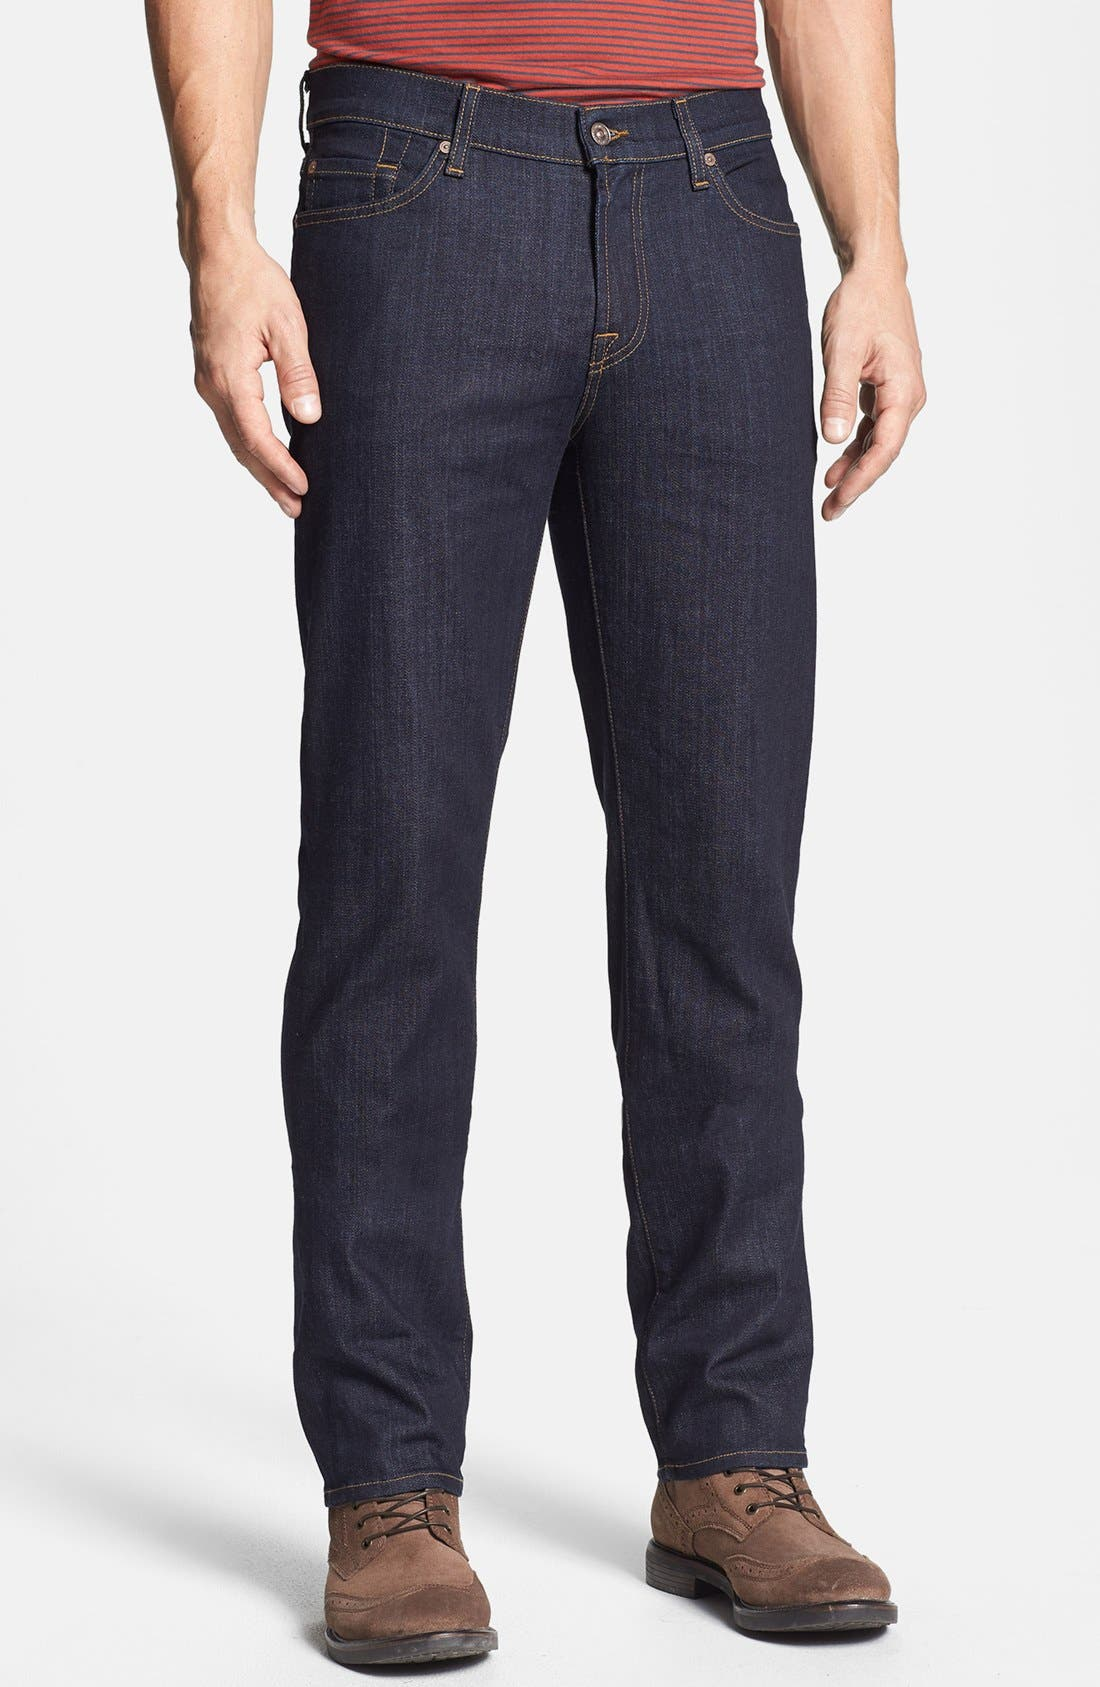 Main Image - 7 For All Mankind® 'Slimmy' Slim Fit Jeans (Dark & Clean)